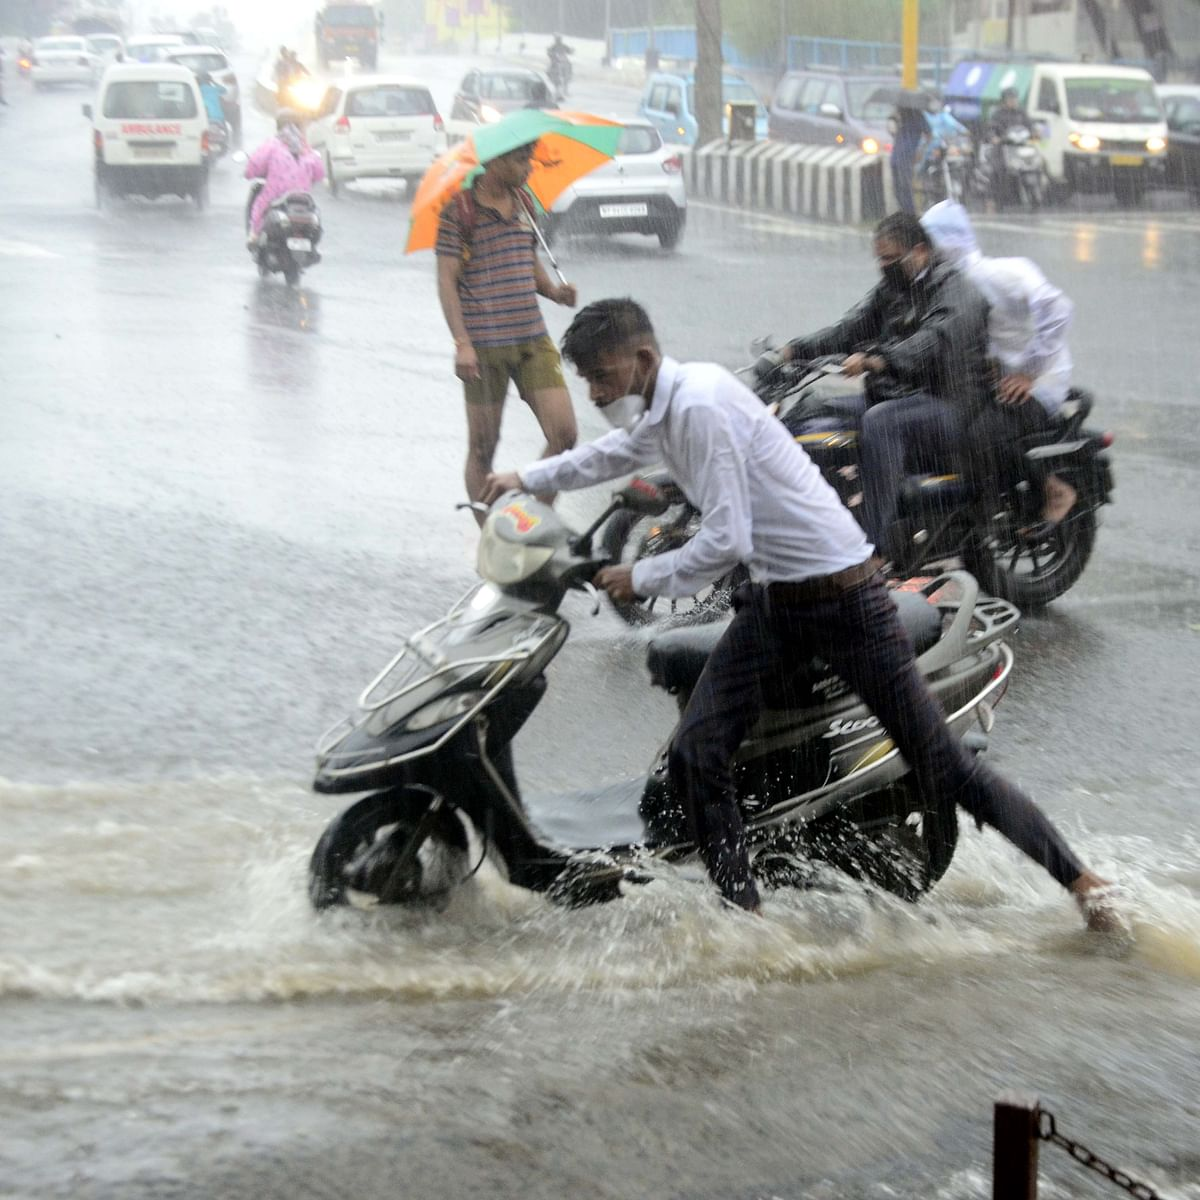 MP Weather Update: Incessant downpour in state, Bhopal reports 8cm of rainfall